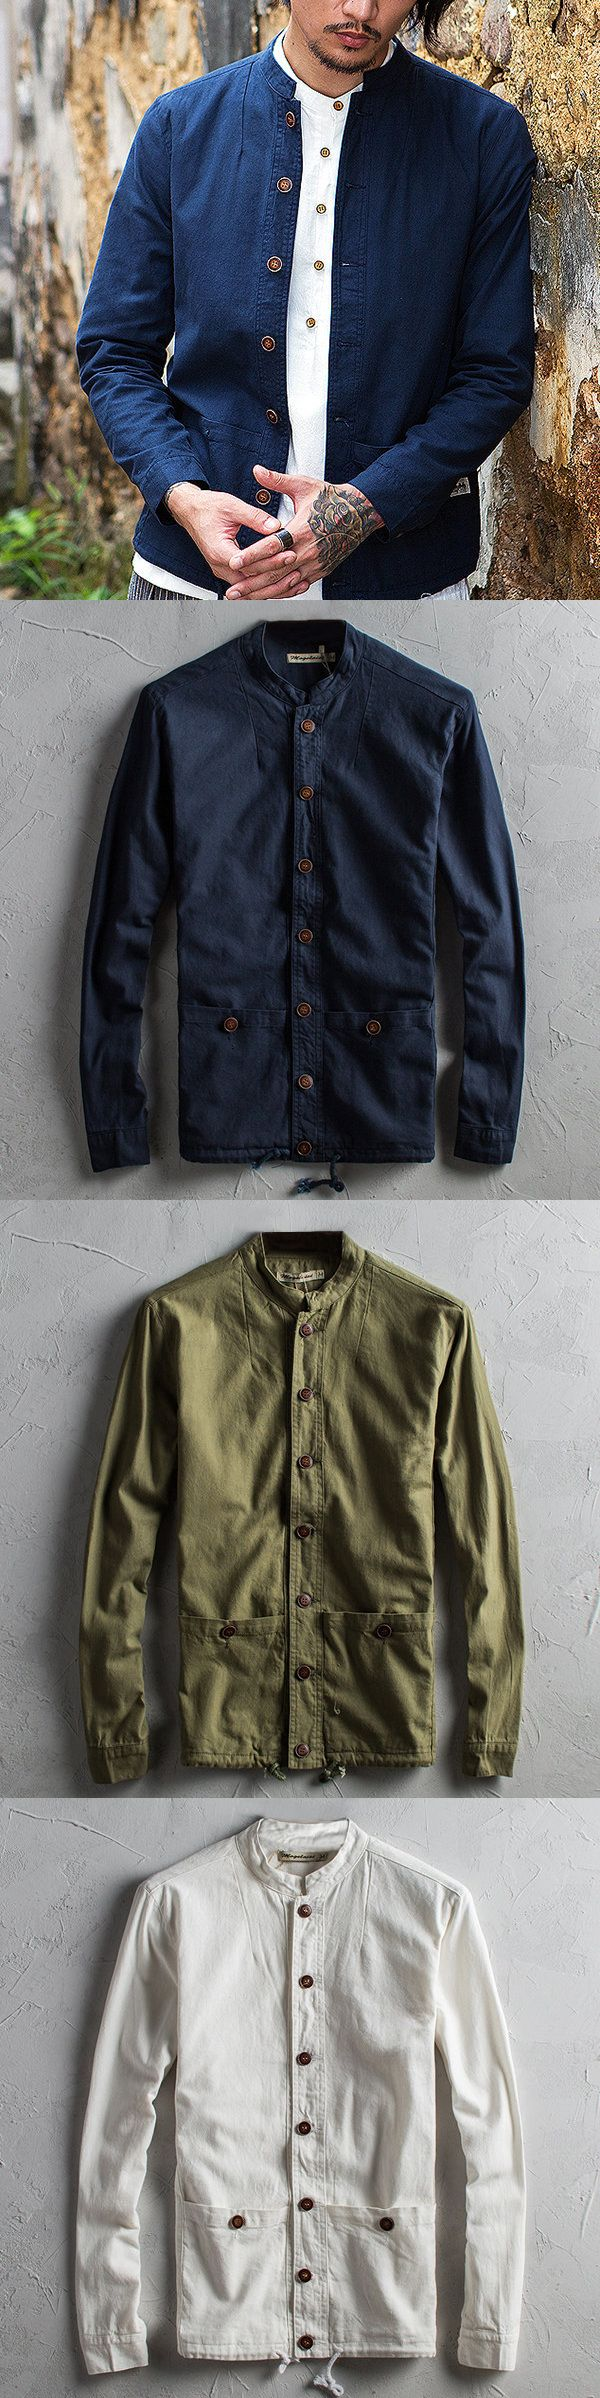 Nike jacket chinese - Vintage Chinese Style Cotton Linen Long Sleeve Slim Fit Stand Collar Jackets For Men